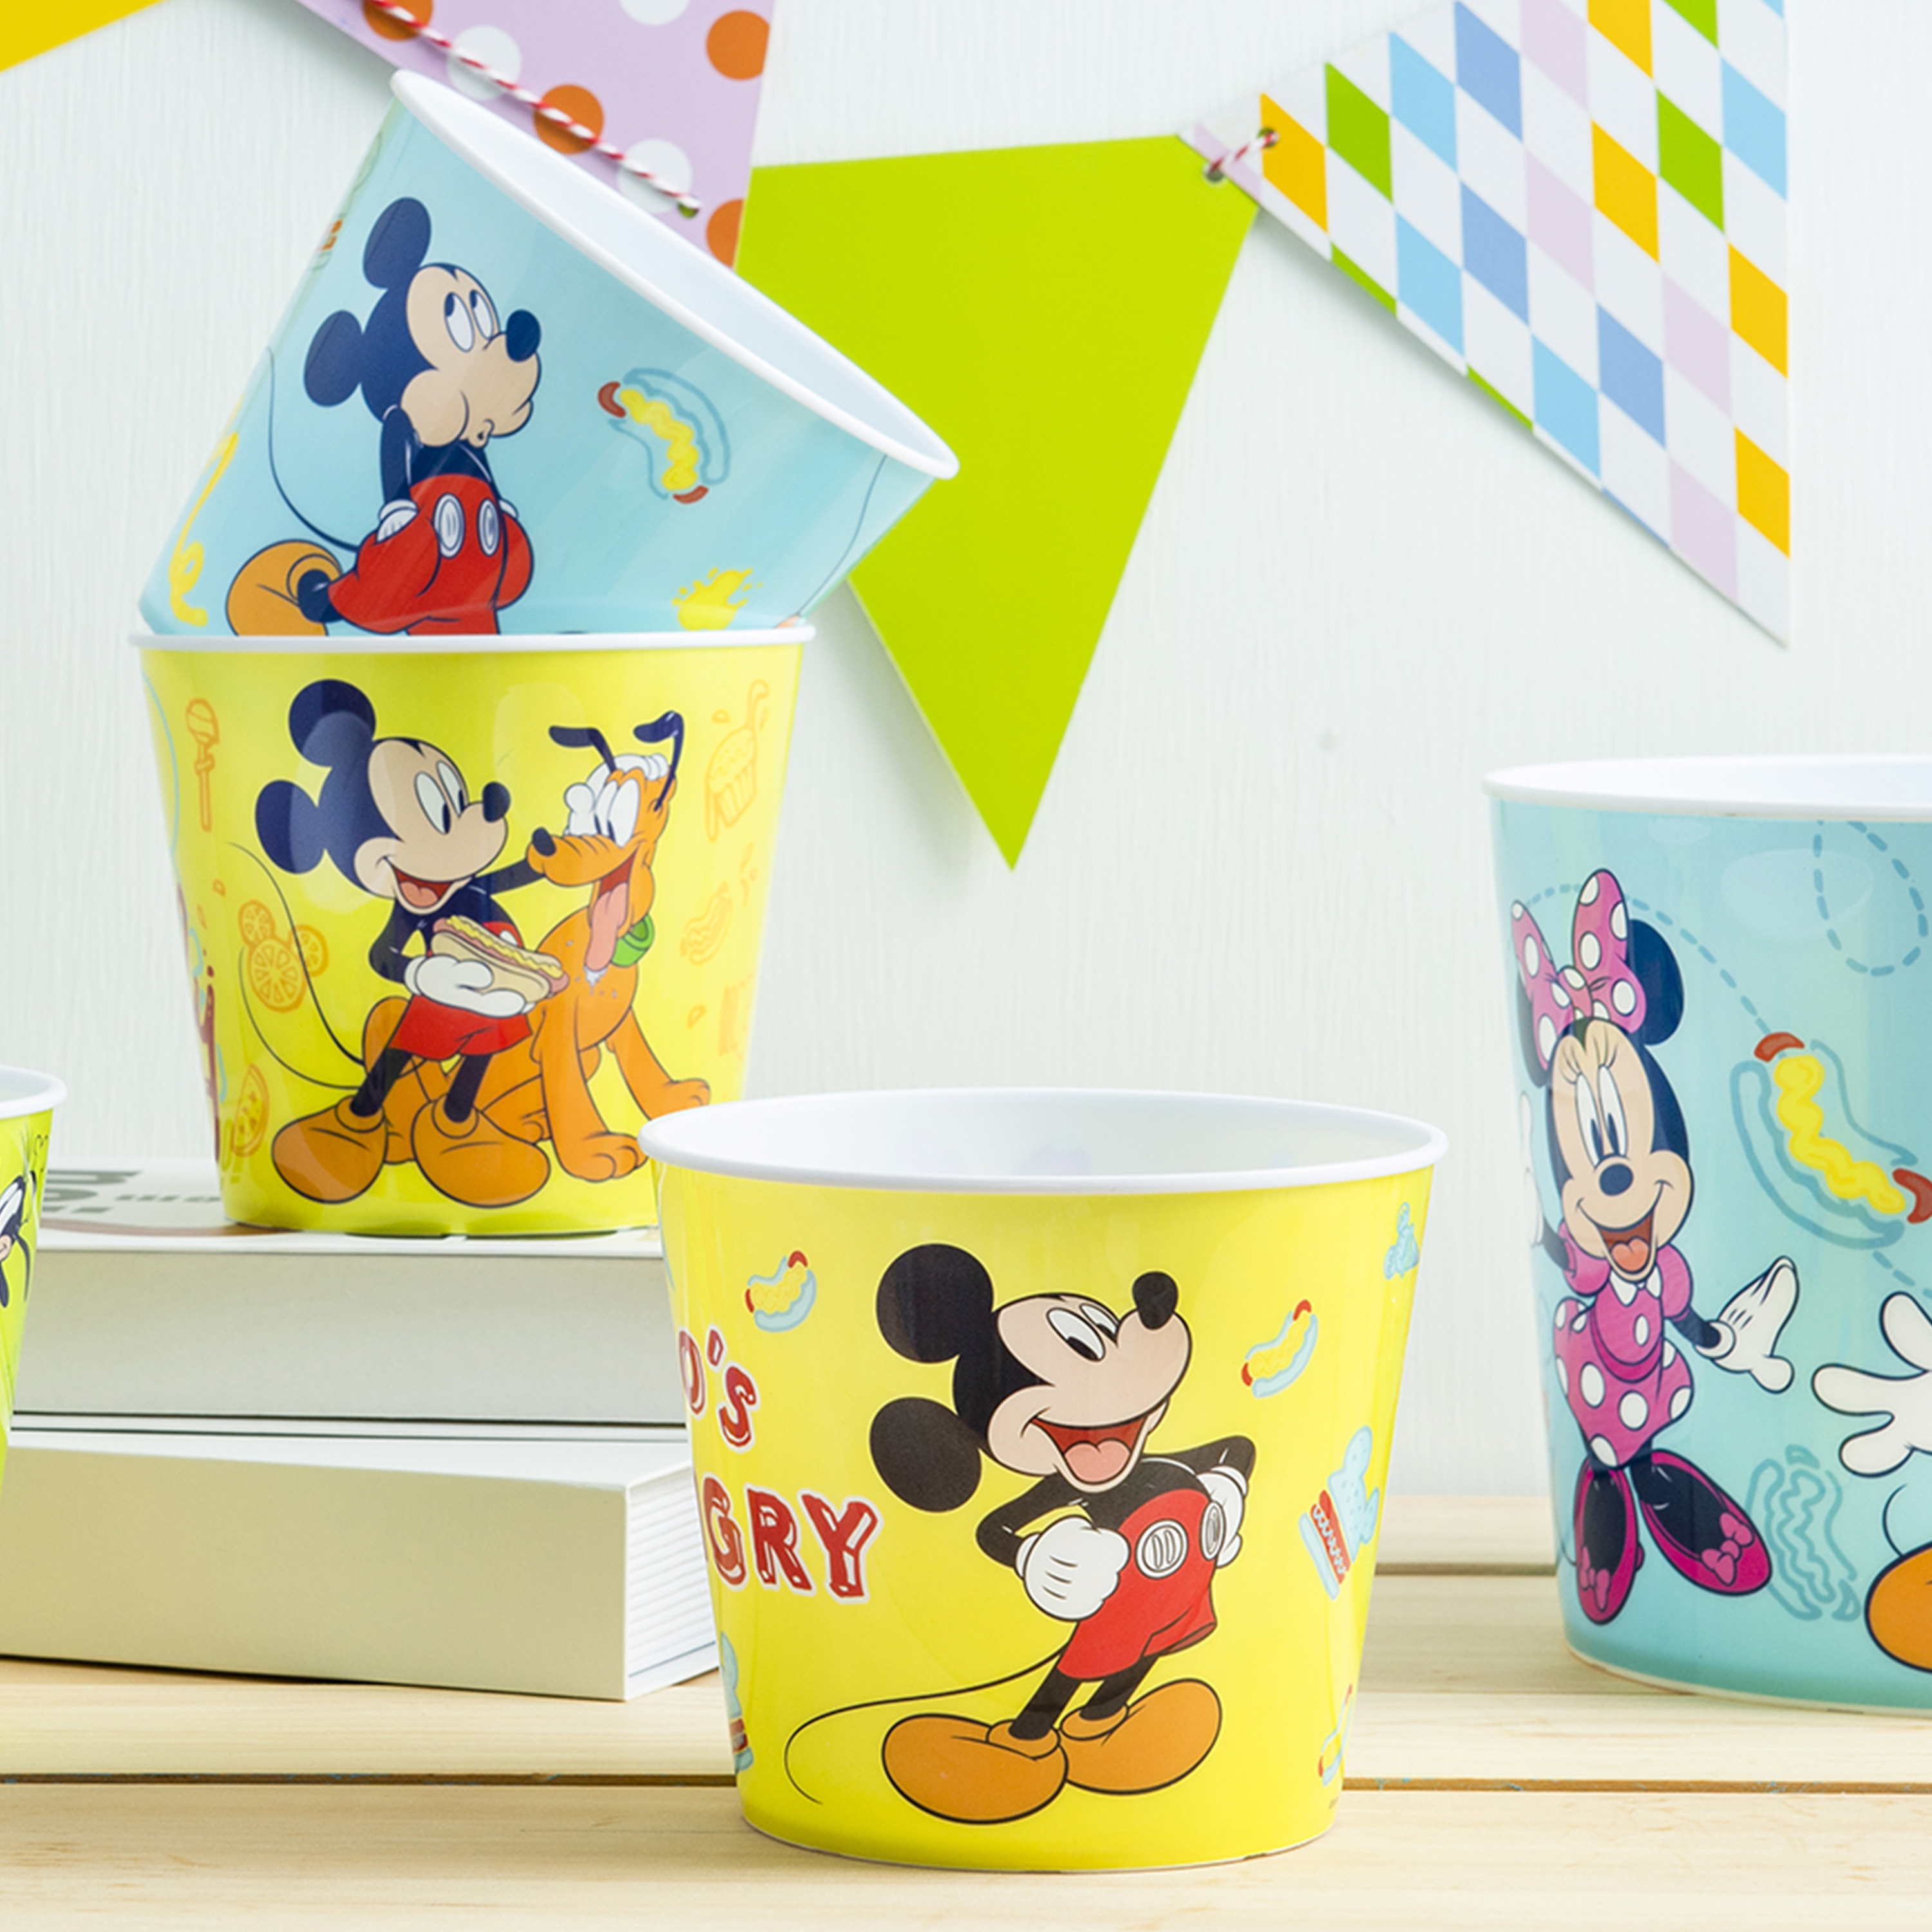 Disney Plastic Popcorn Container and Bowls, Mickey Mouse and Minnie Mouse, 5-piece set slideshow image 6